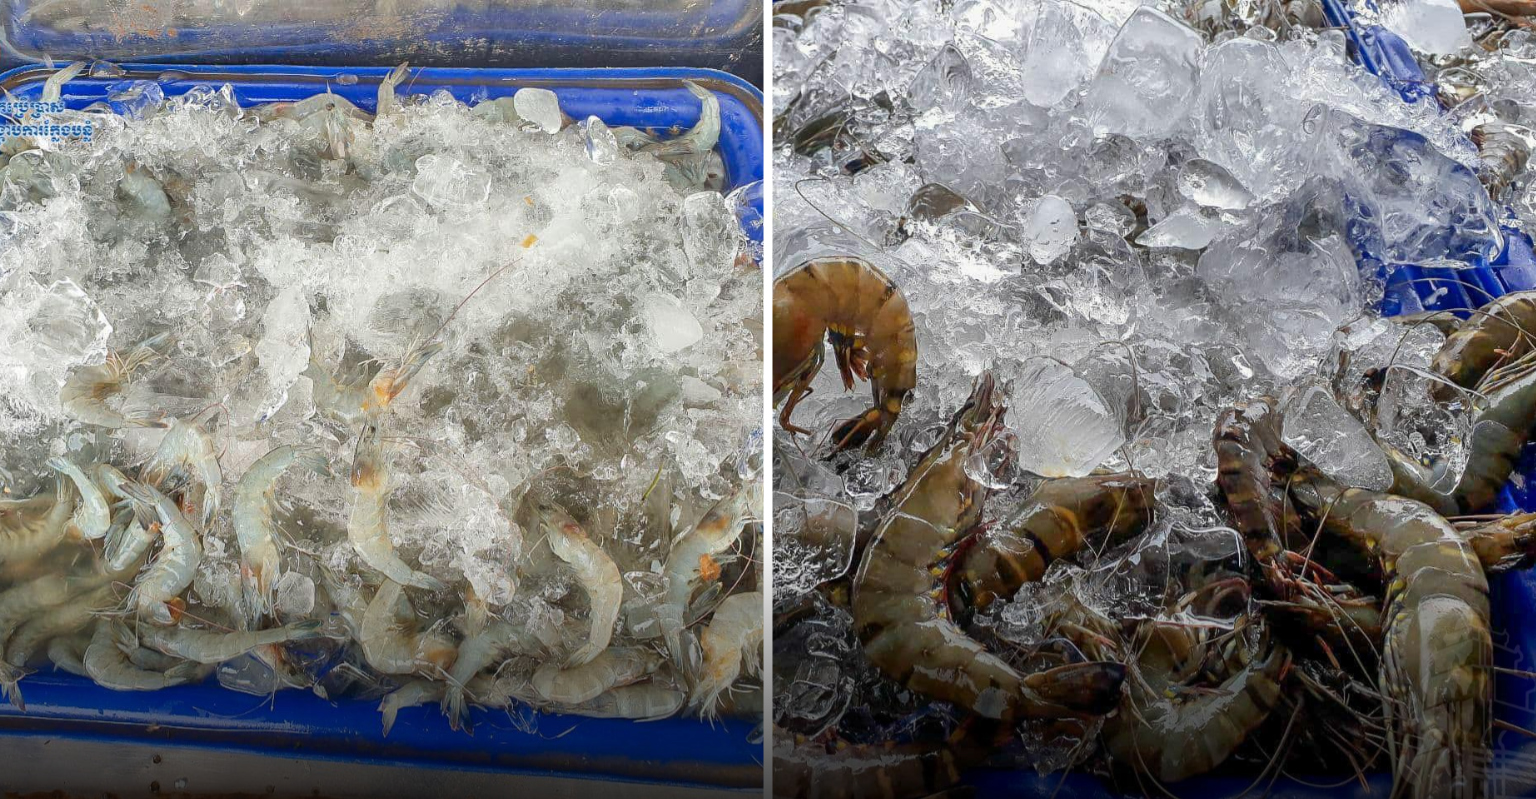 freshwater-prawns-and-lobsters-for-sale-on-tralok-bek-road